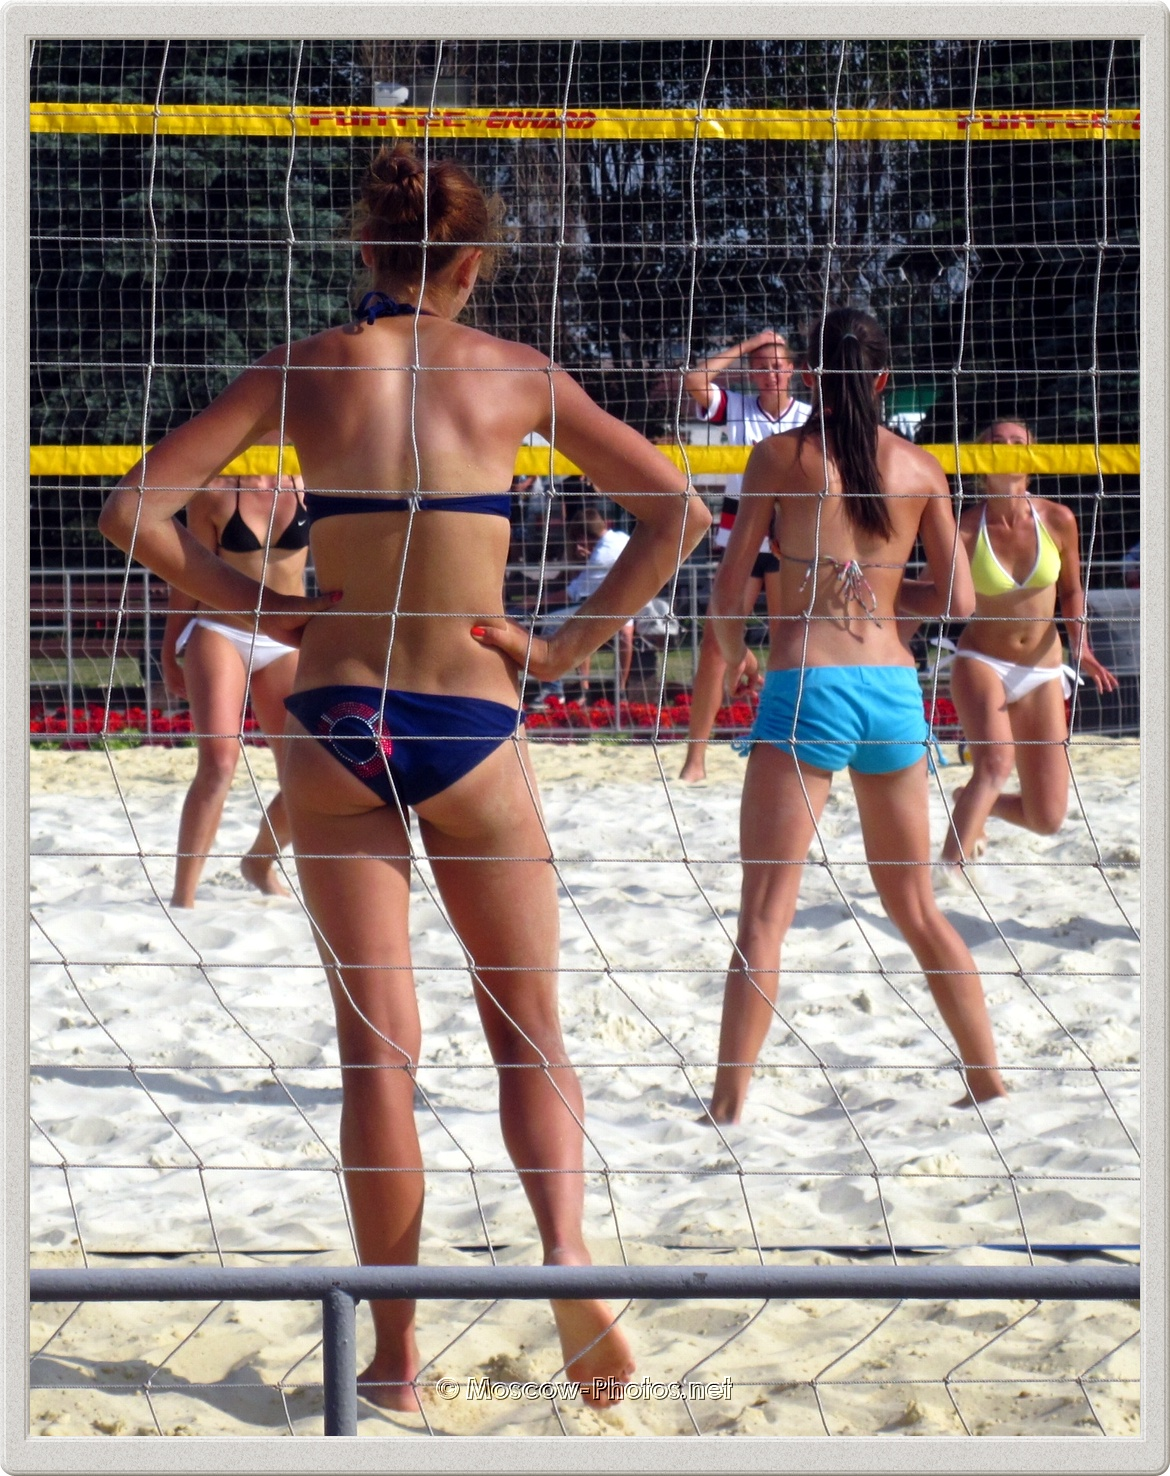 Tanned Beach Volleyball Girls In Moscow